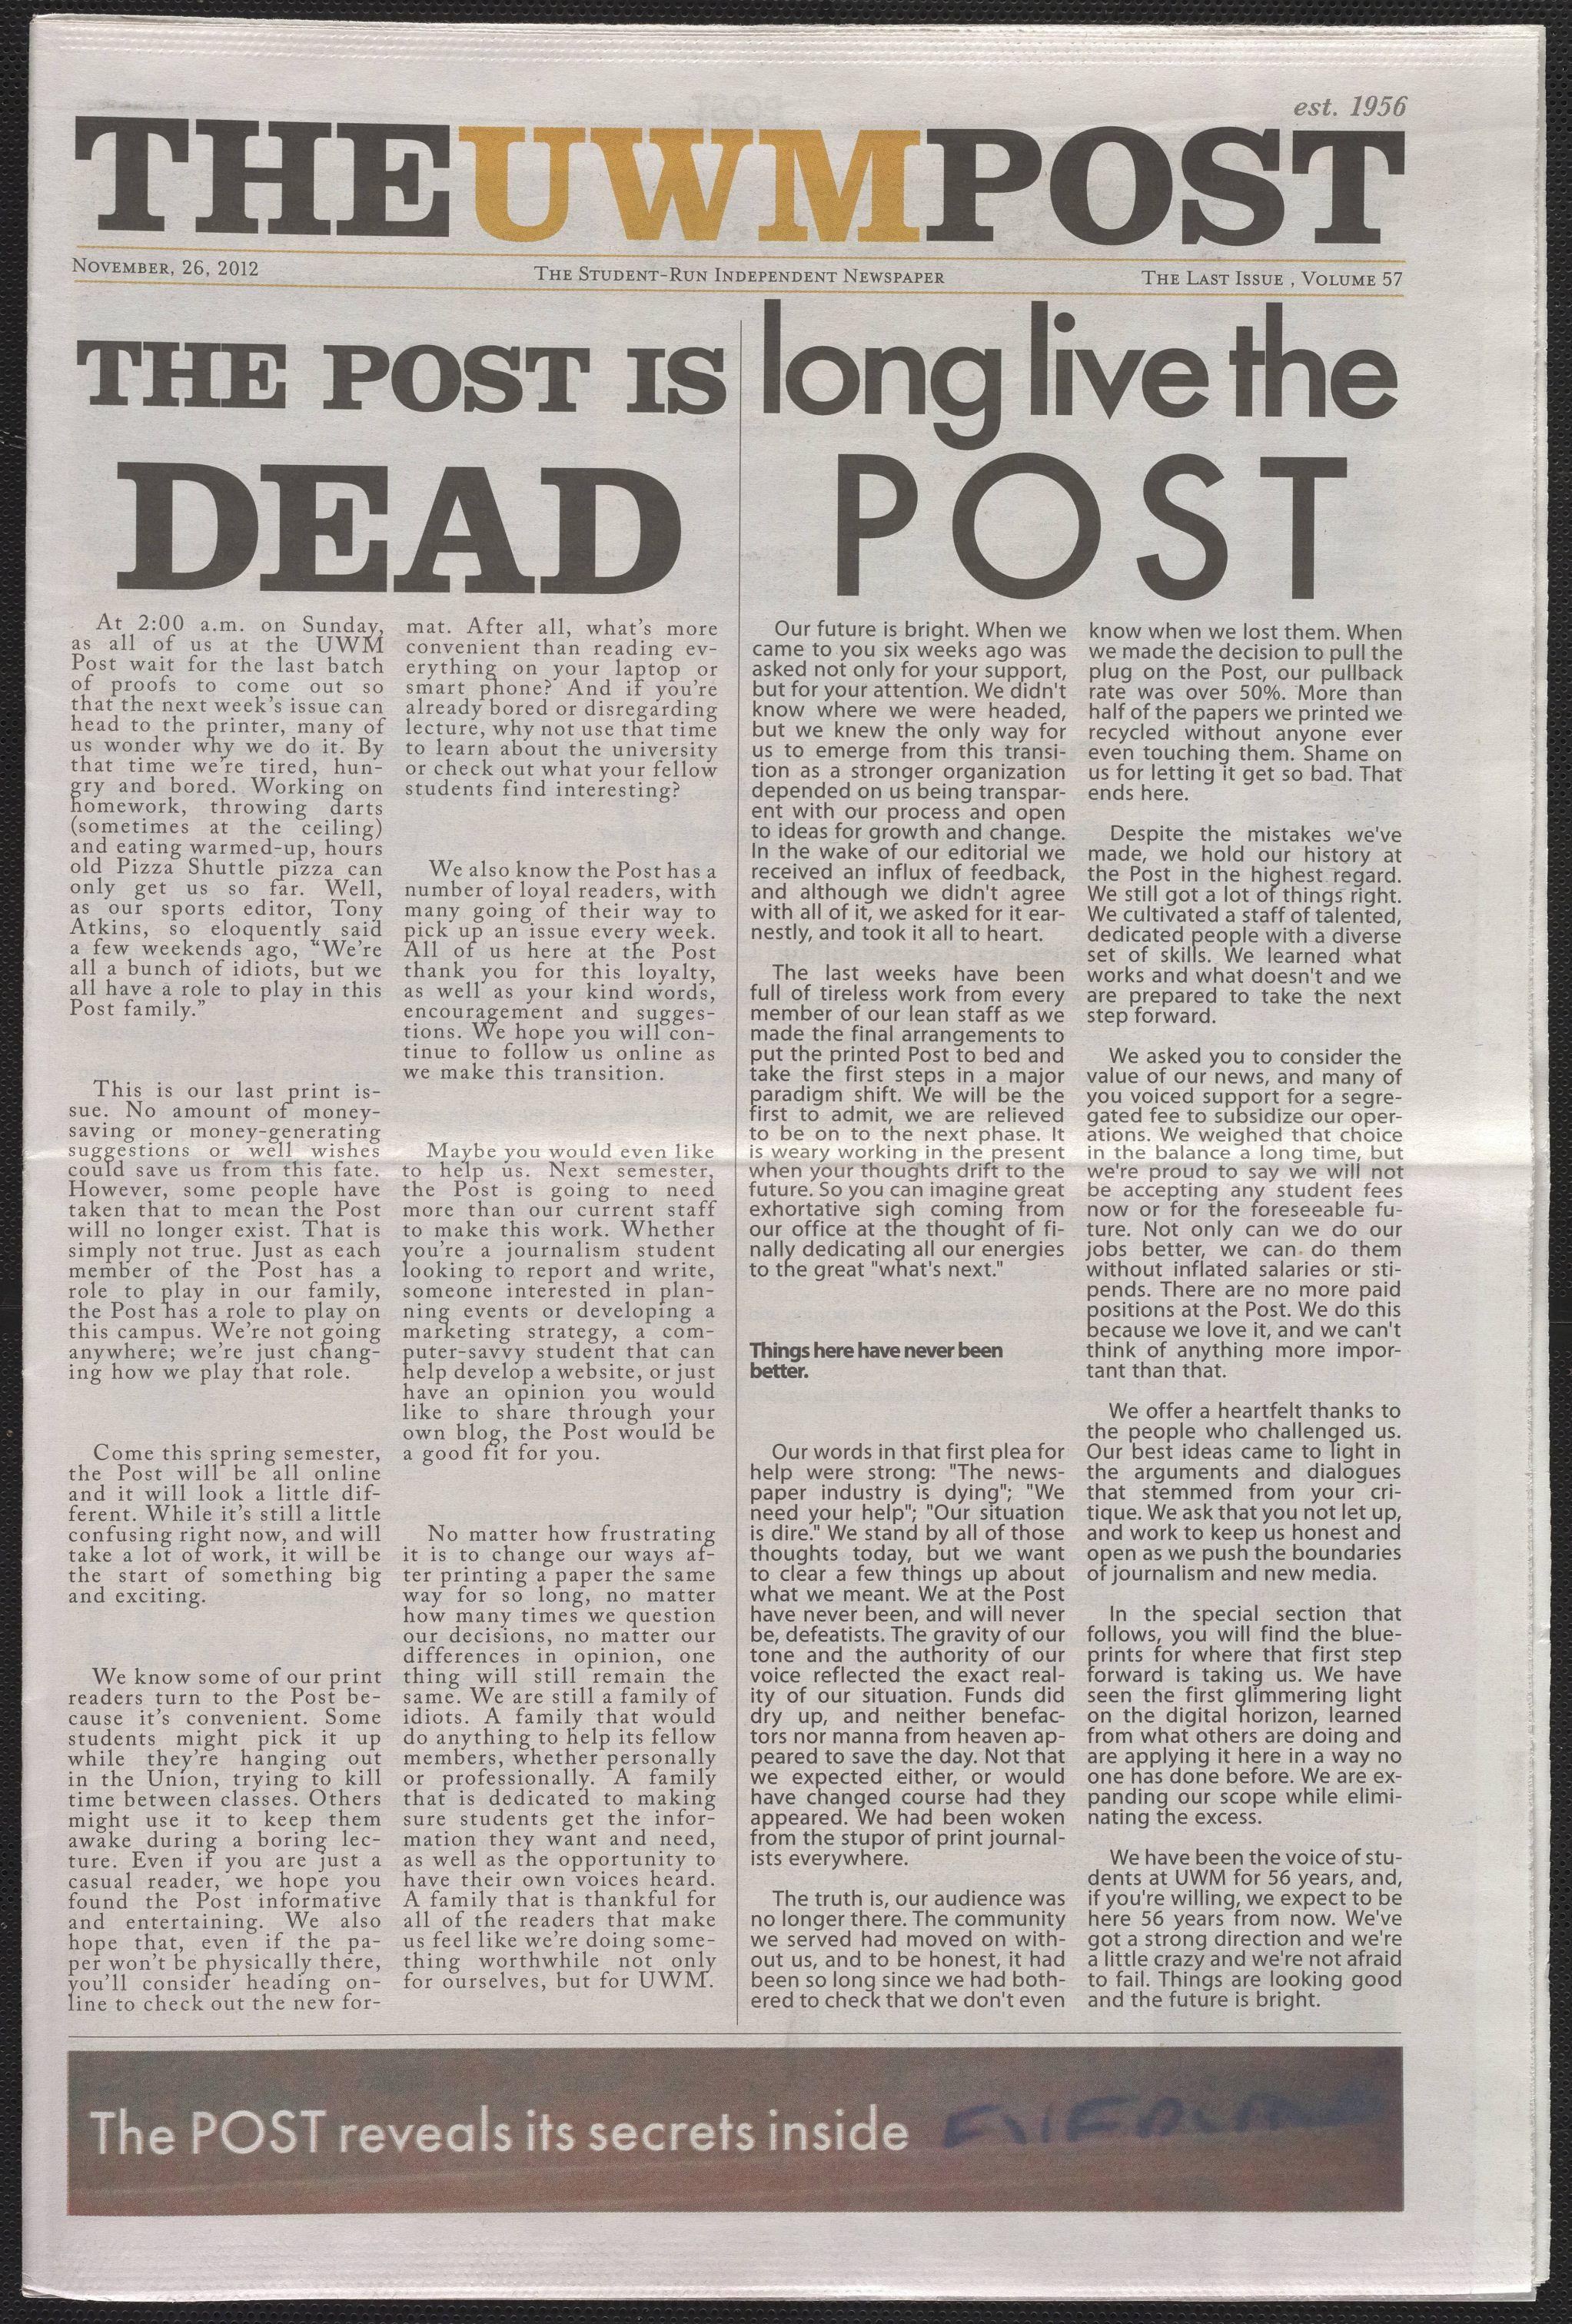 The UWM Post, a student-run newspaper, was founded in 1956 and printed weekly papers until 2012, after readership declined and costs became too prohibitive.